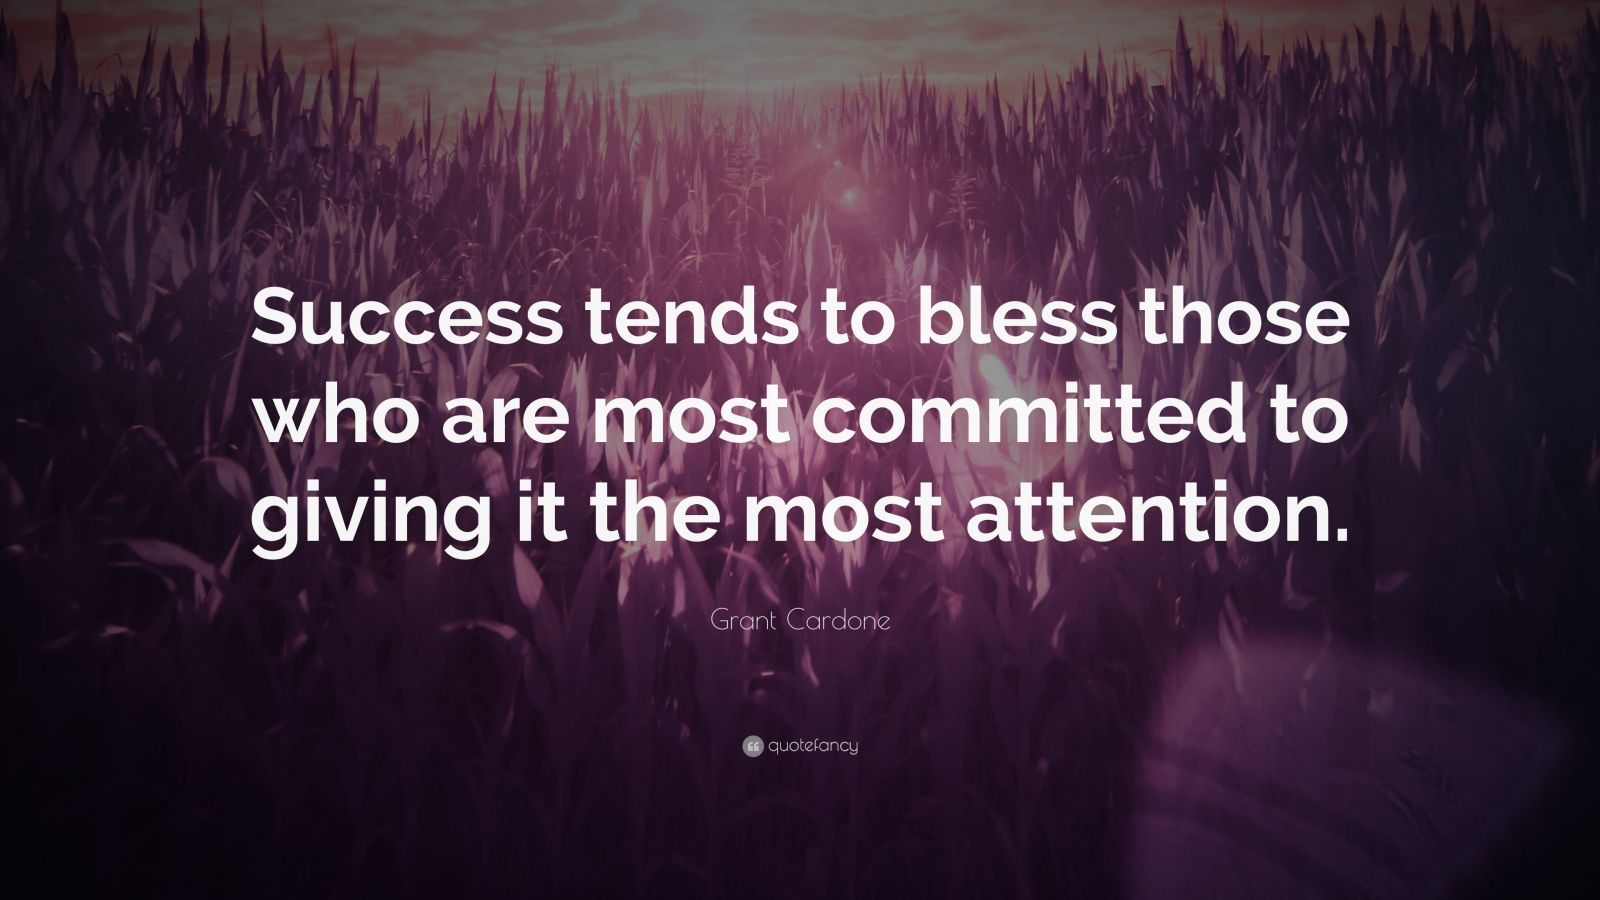 """Grant Cardone Quote: """"Success tends to bless those who are most committed to giving it the most attention."""""""